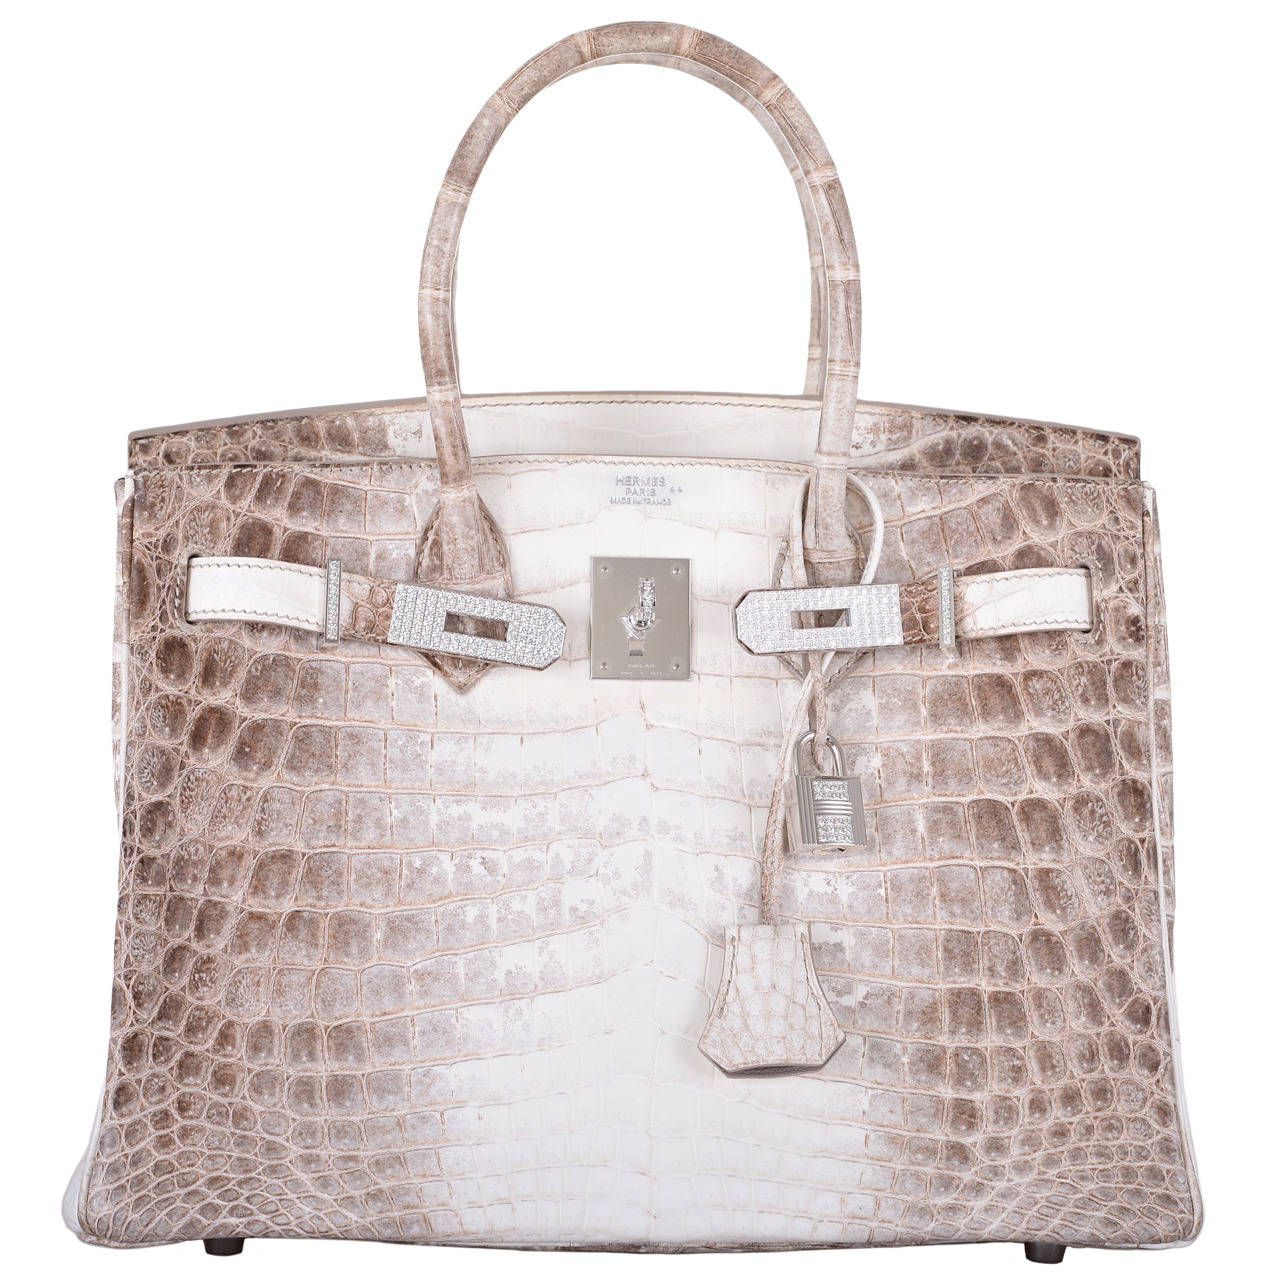 hermes birkin handbags price - This $300,000 Birkin Bag Is the Most Expensive Bag Ever Auctioned ...